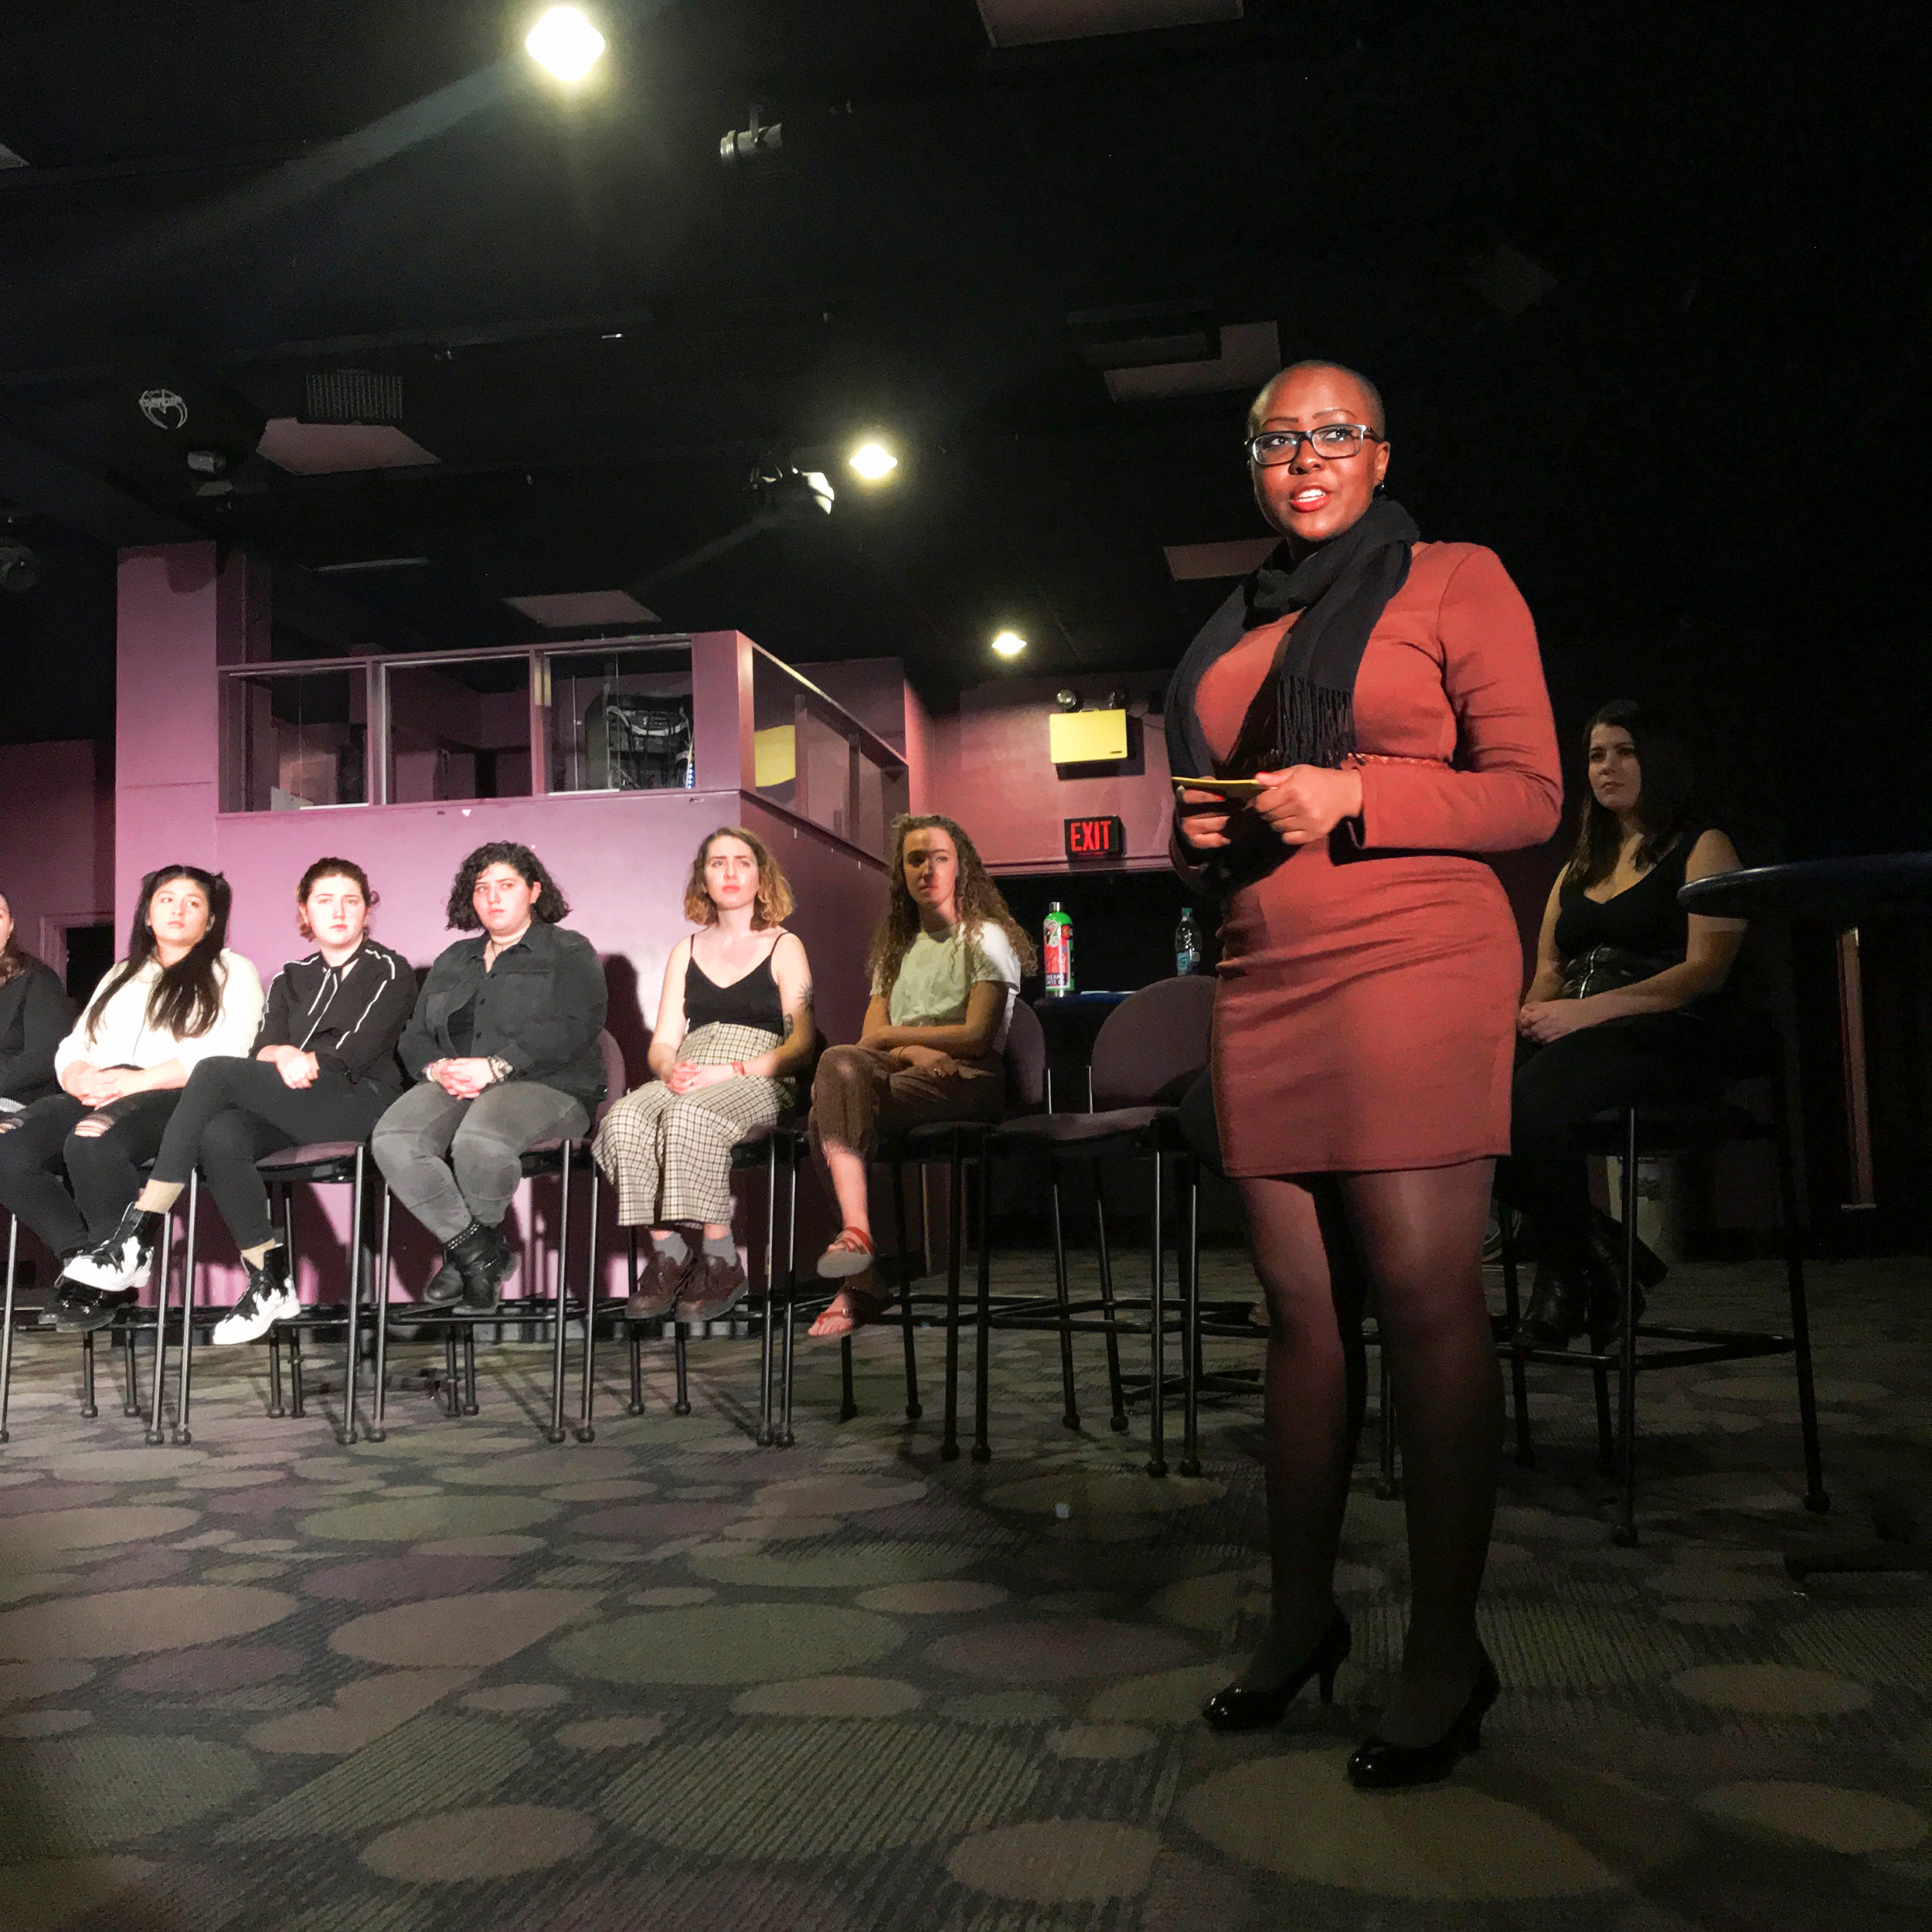 """""""The Vagina Monologues,"""" put on by the Women's Action Coalition, took place from Friday Feb. 15 to Sunday Feb. 17 in the Knight Spot. This show involves monologues that depict issues relevant to the vagina (Chloe Shay/Staff Photographer)."""